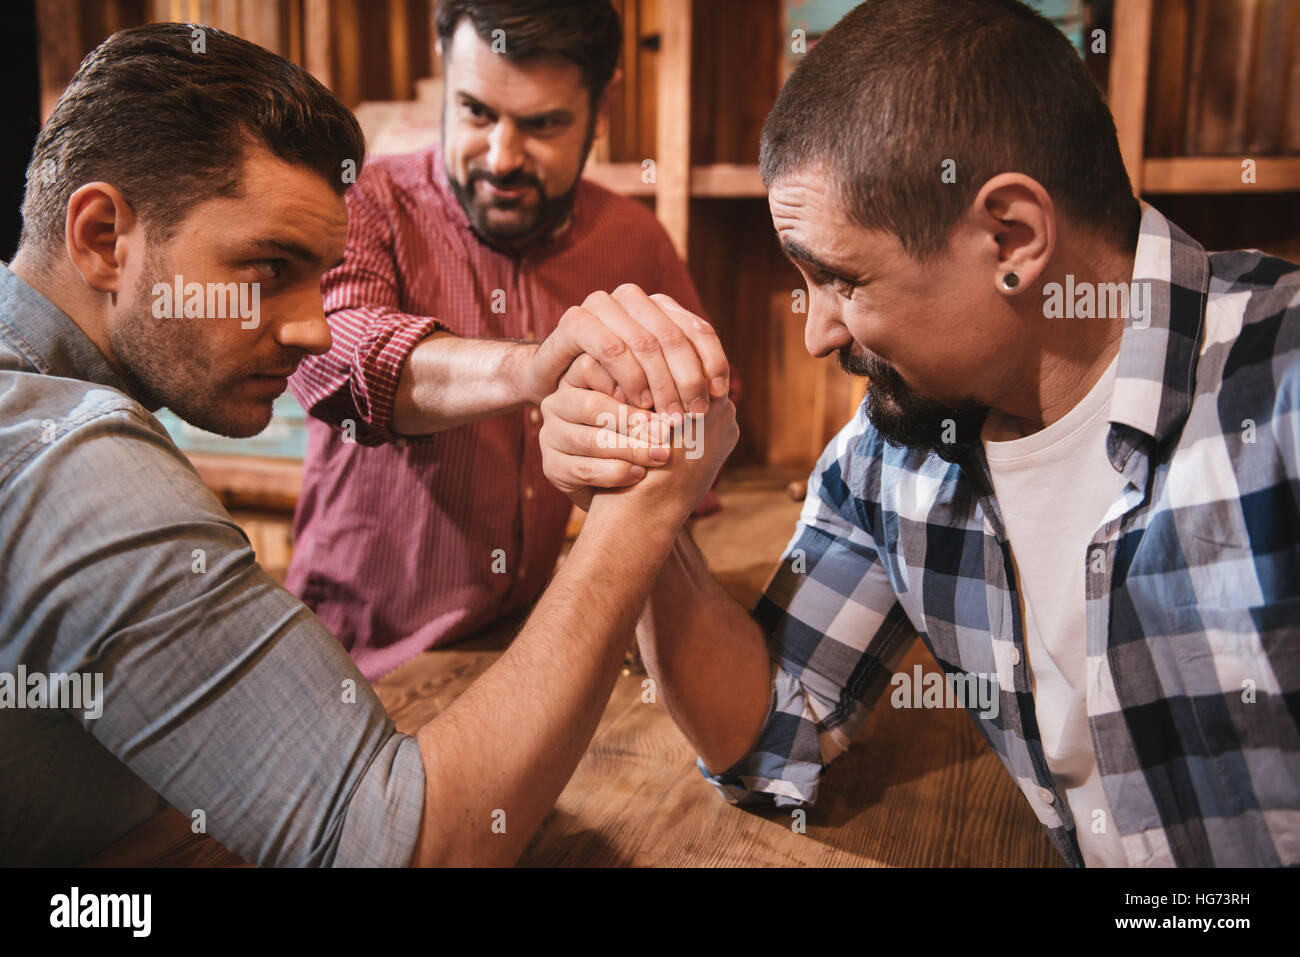 Handsome serious men preparing to start an armwrestling match - Stock Image